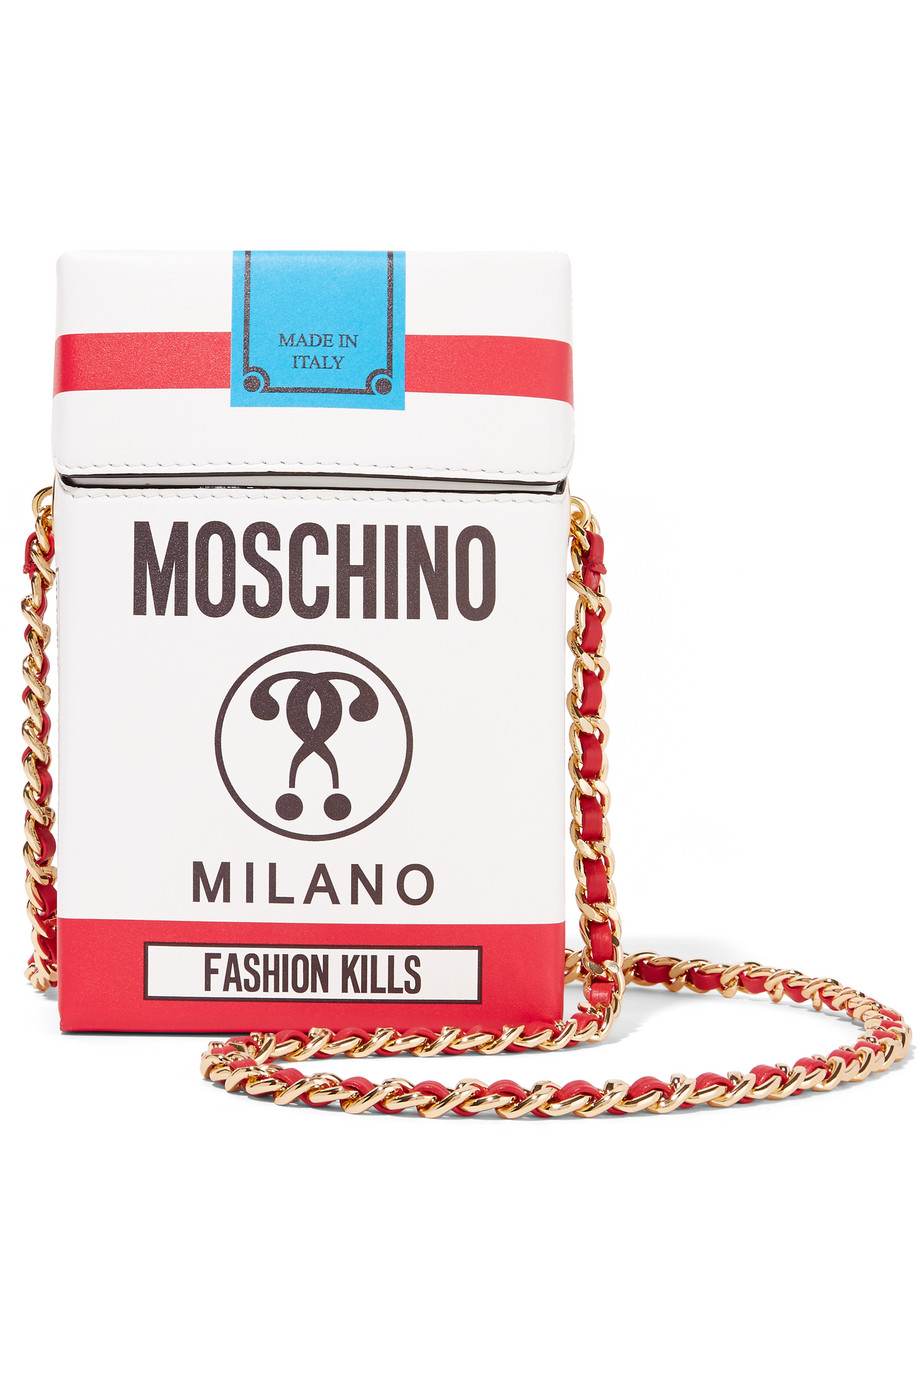 Moschino Printed Leather Shoulder Bag, White, Women's